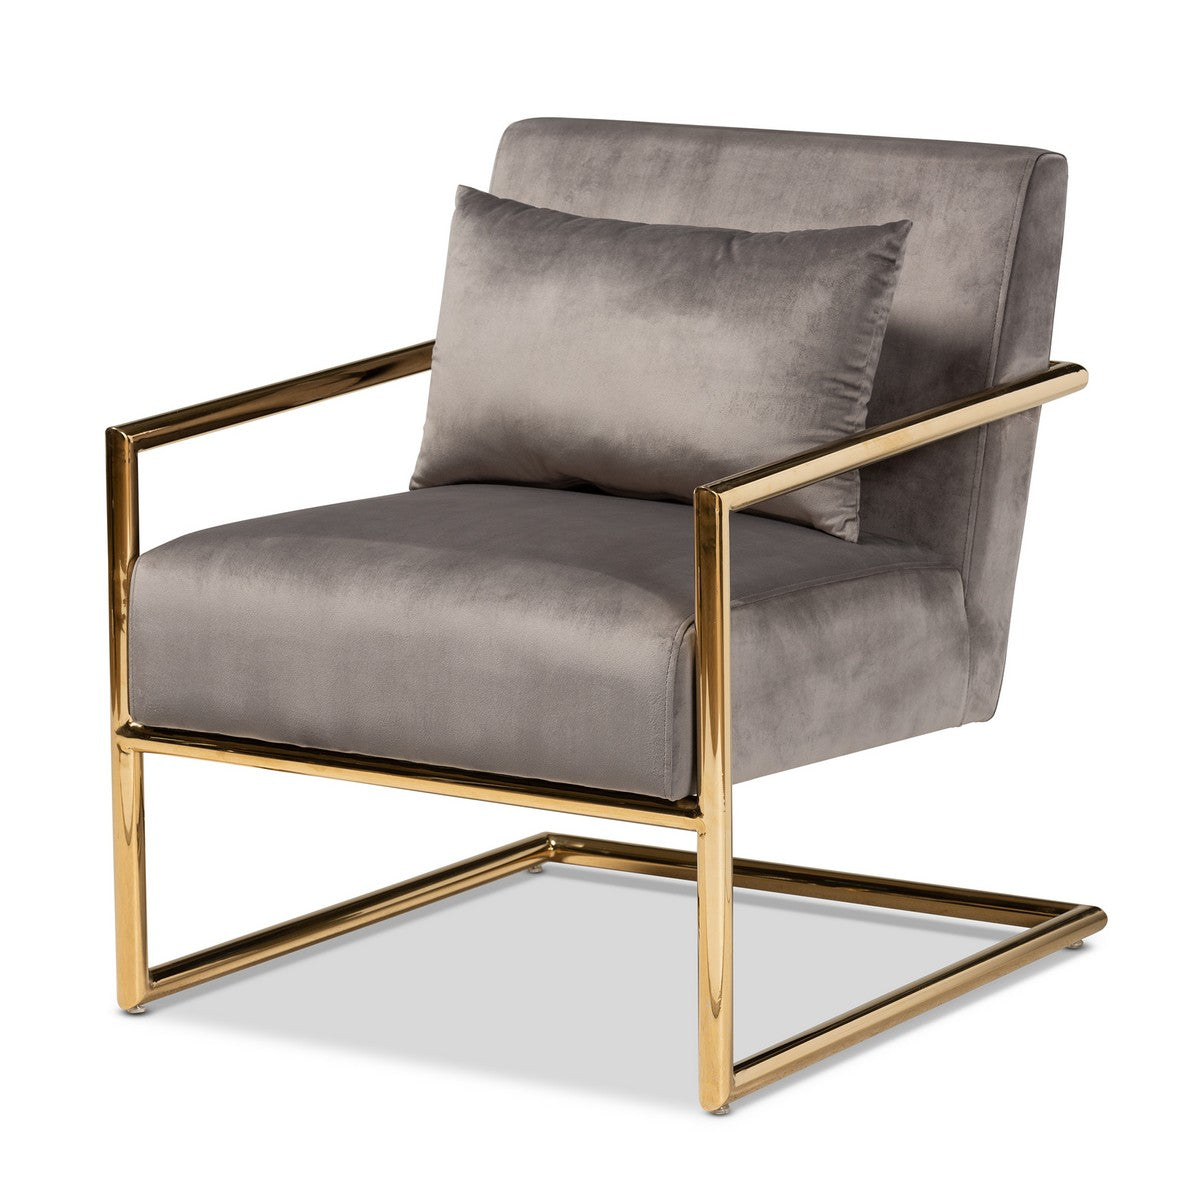 Baxton Studio Mira Glam and Luxe Grey Velvet Fabric Upholstered Gold Finished Metal Lounge Chair Baxton Studio- Chairs-Minimal And Modern - 1